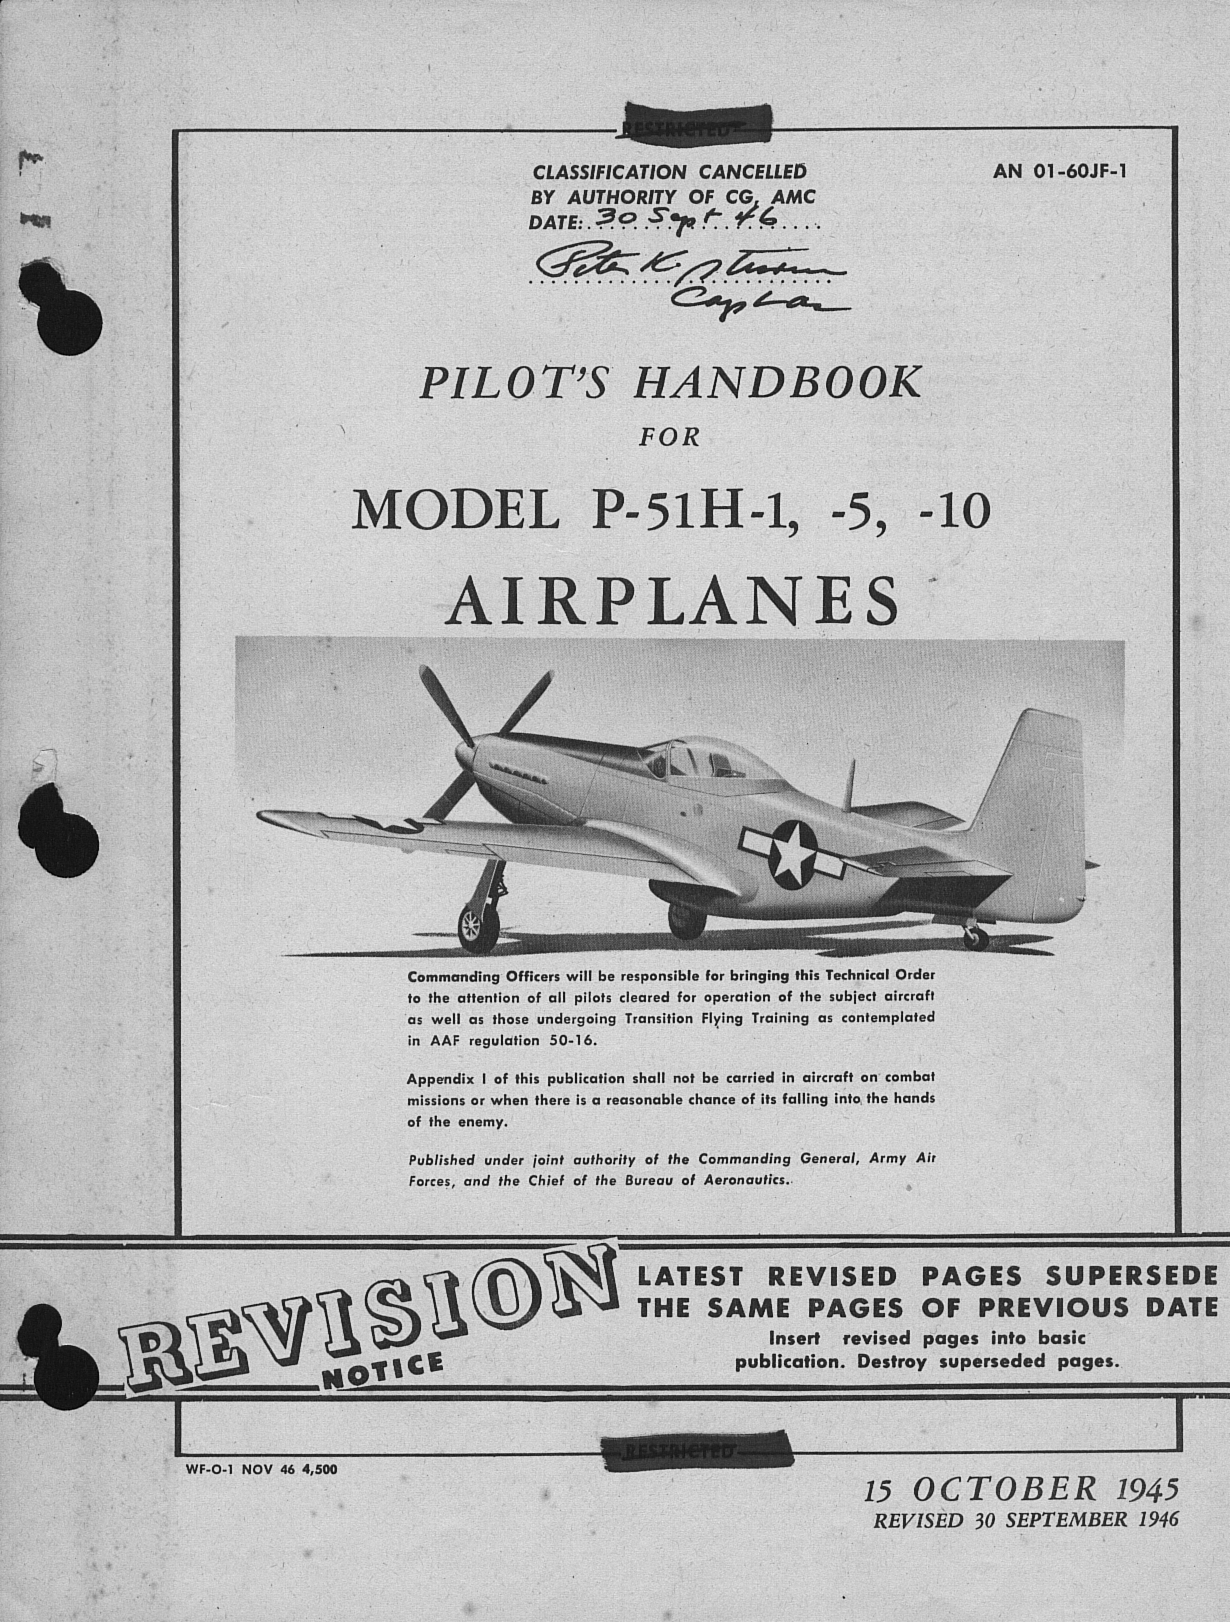 Sample page 1 from AirCorps Library document: Pilot's Handbook for P-51H-1, -5, and -10 Airplanes